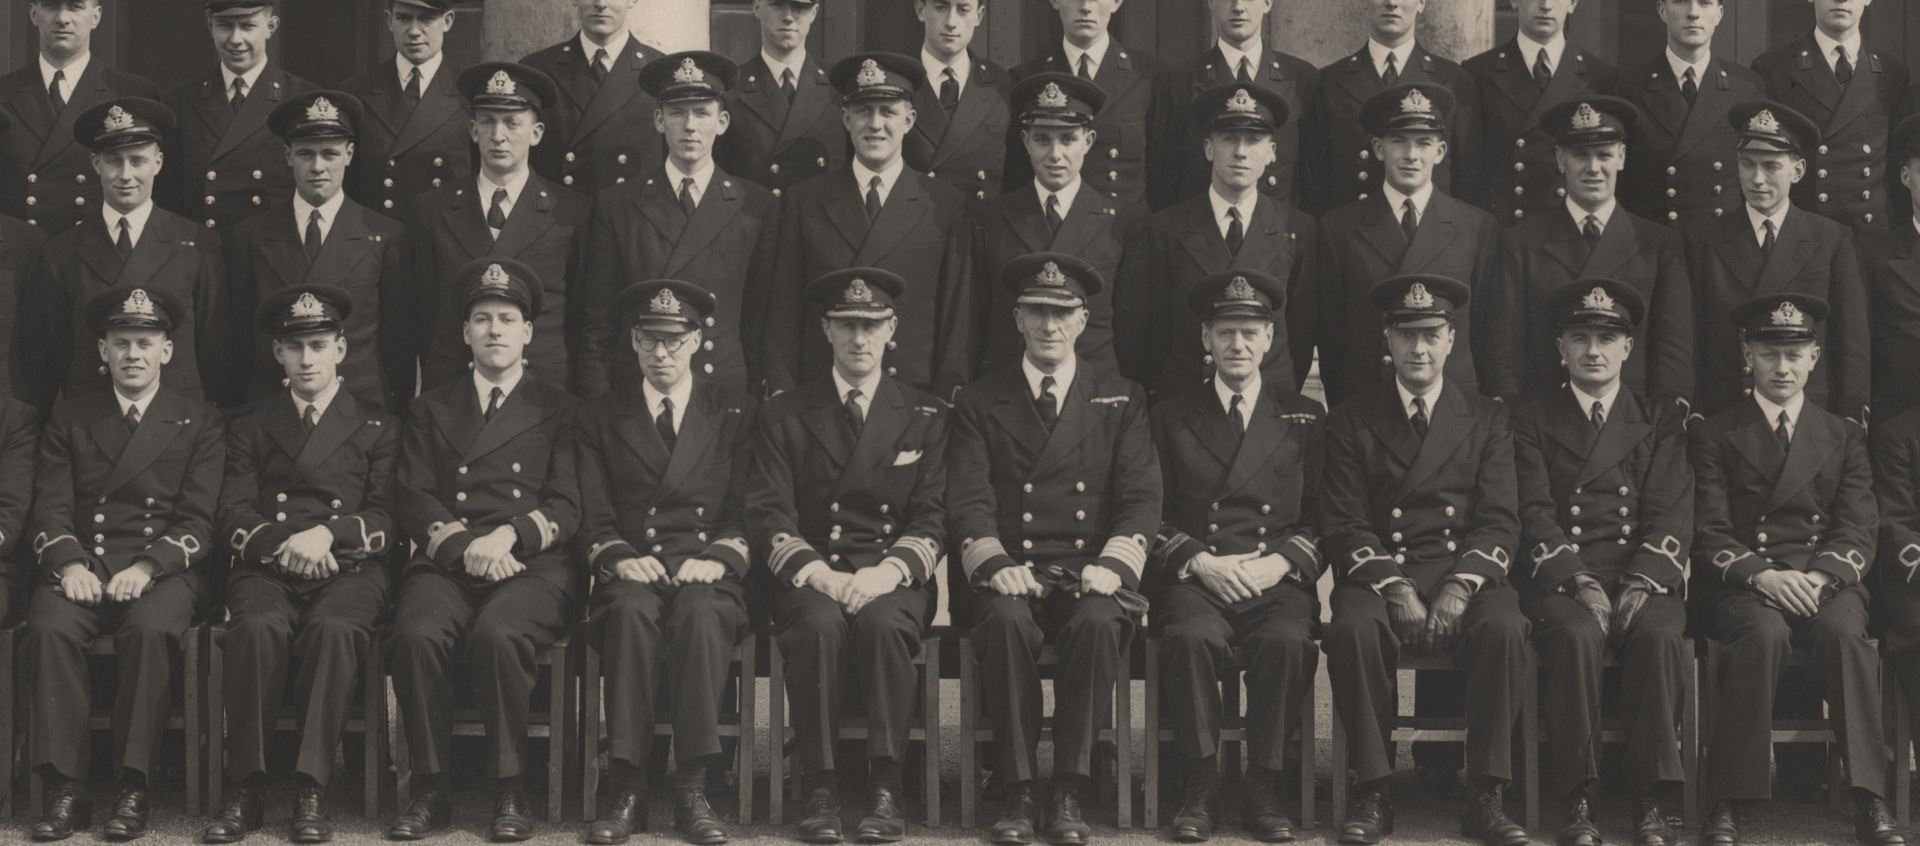 The Royal Navy Officers Pocket Book (1944)